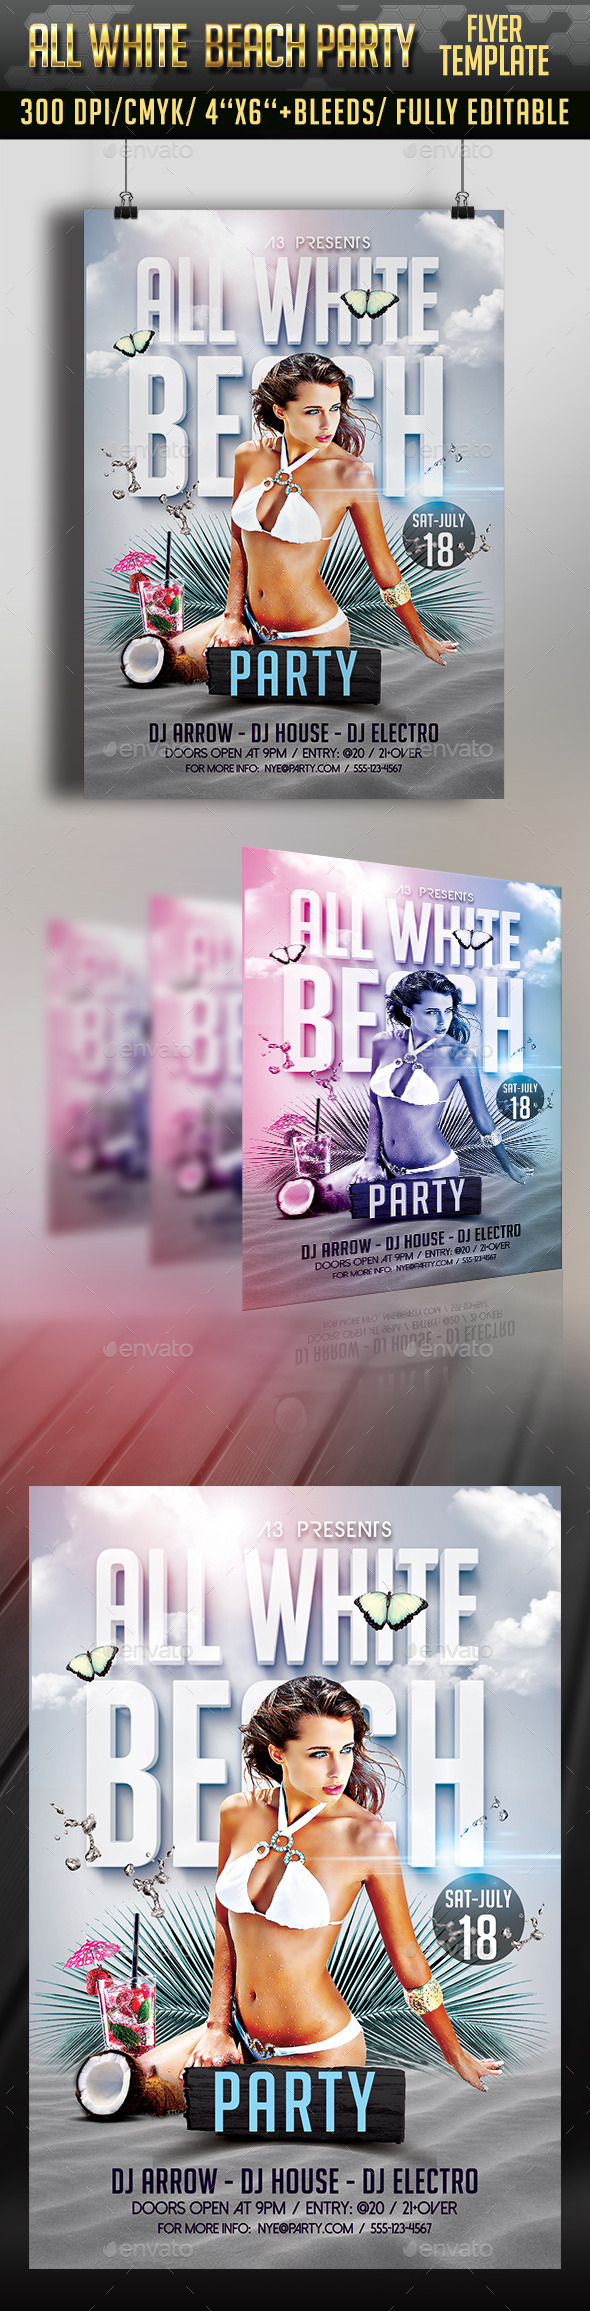 All White Beach Party Flyer - Clubs & Parties Events